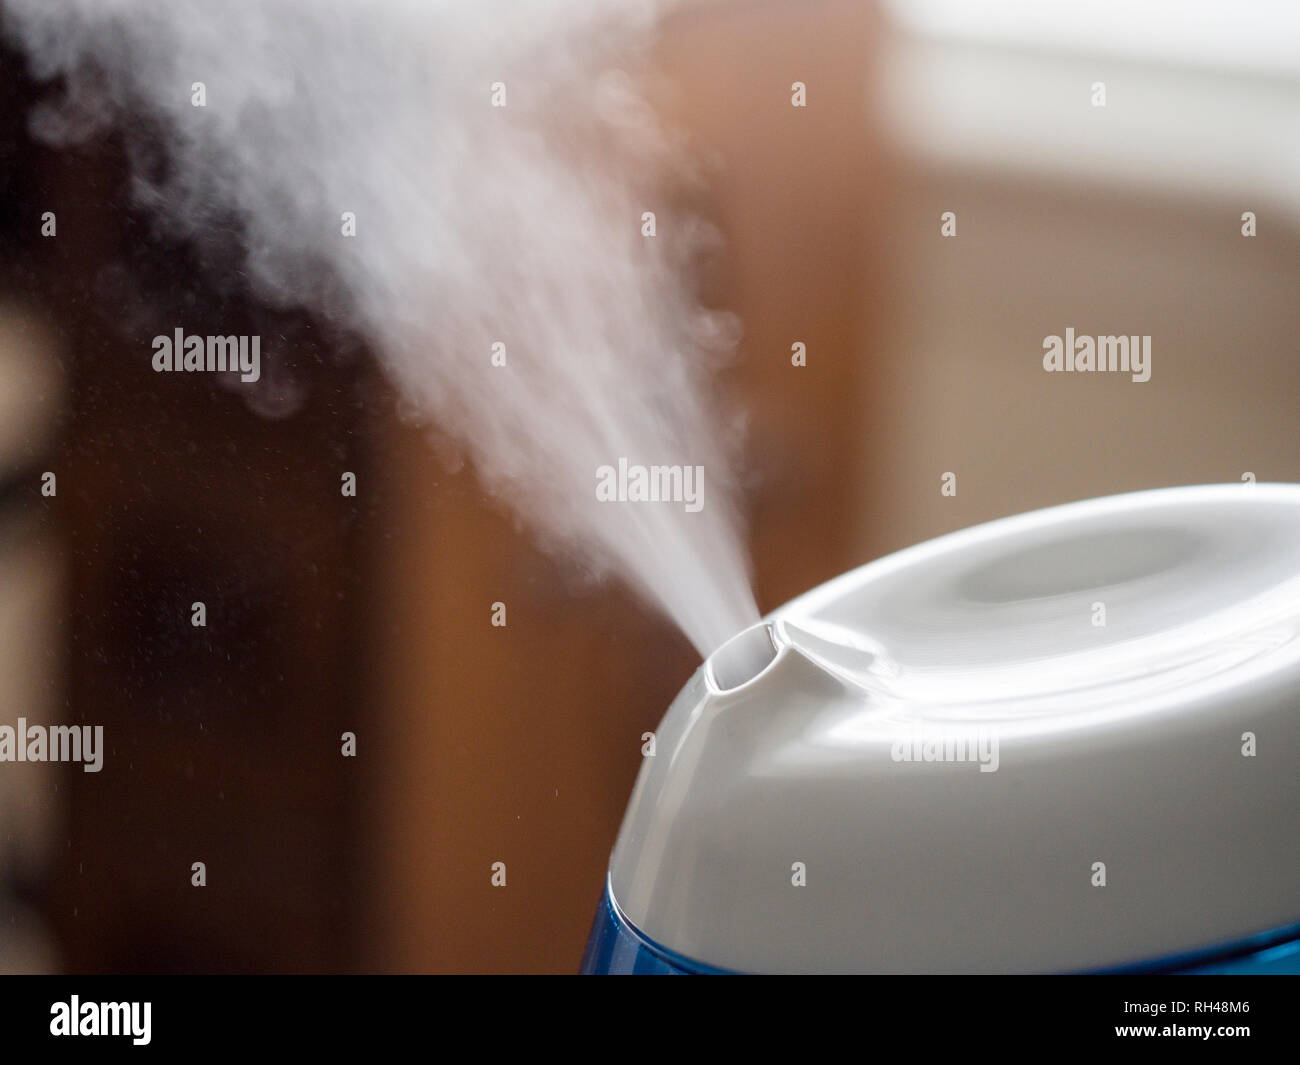 Cold mist humidifier: A nebulizer-based humidifier spews tiny water droplets into the air to rais the humidity on cold winter days. - Stock Image